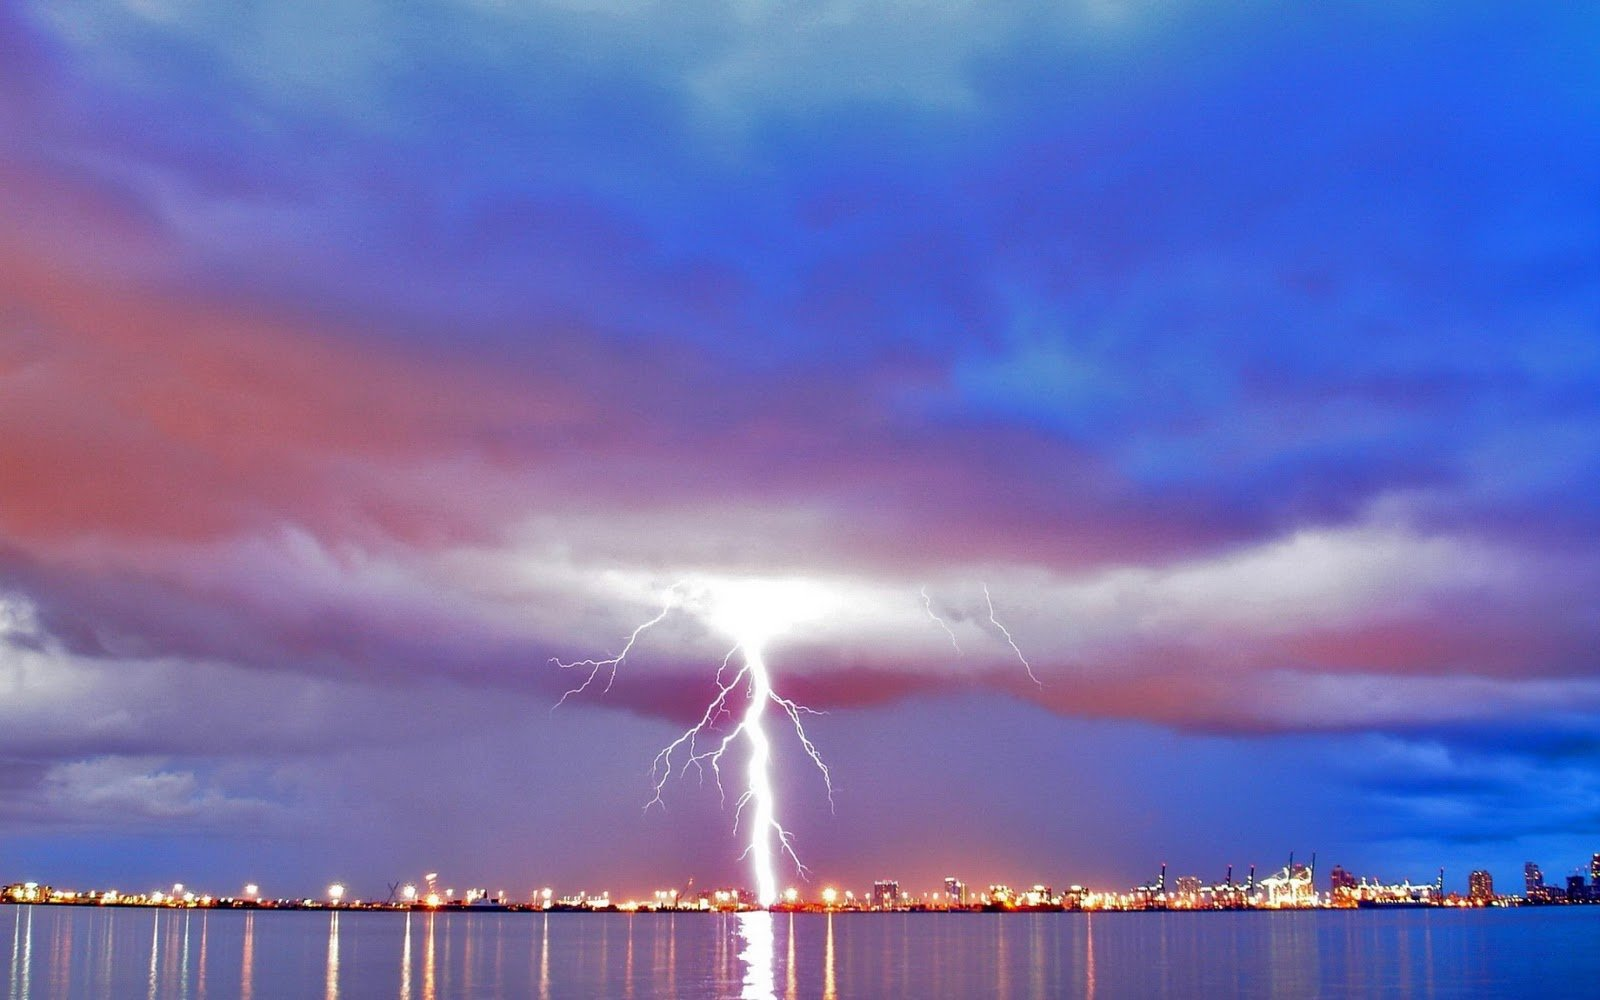 hd wallpapers lightning latest hd wallpapers lightning latest hd 1600x1000